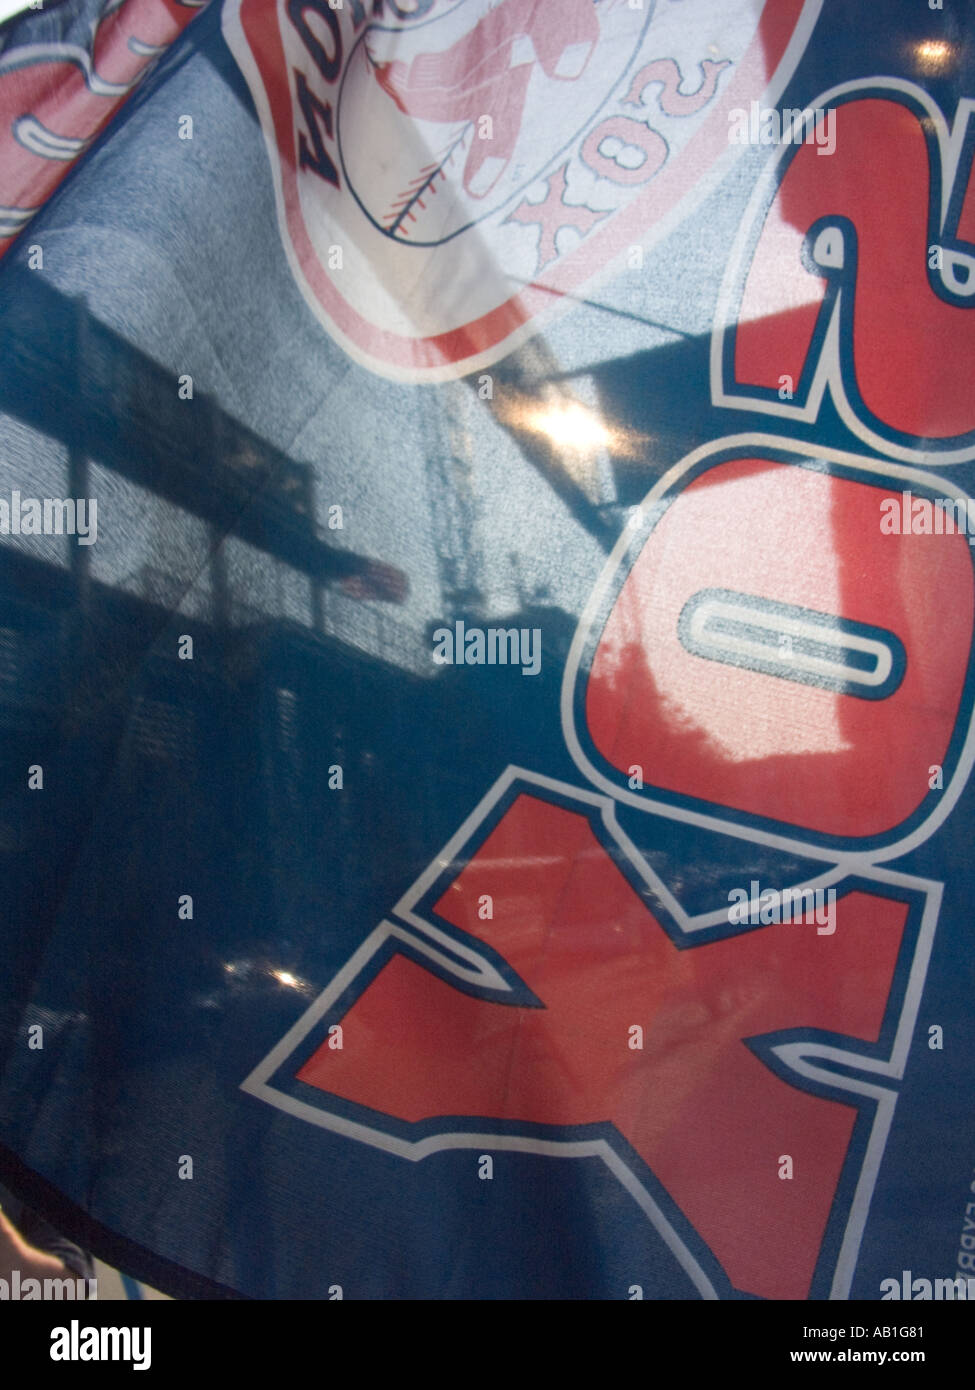 Red Sox team flag hangs outside Fenway Park Baseball stadium on a game day - Stock Image